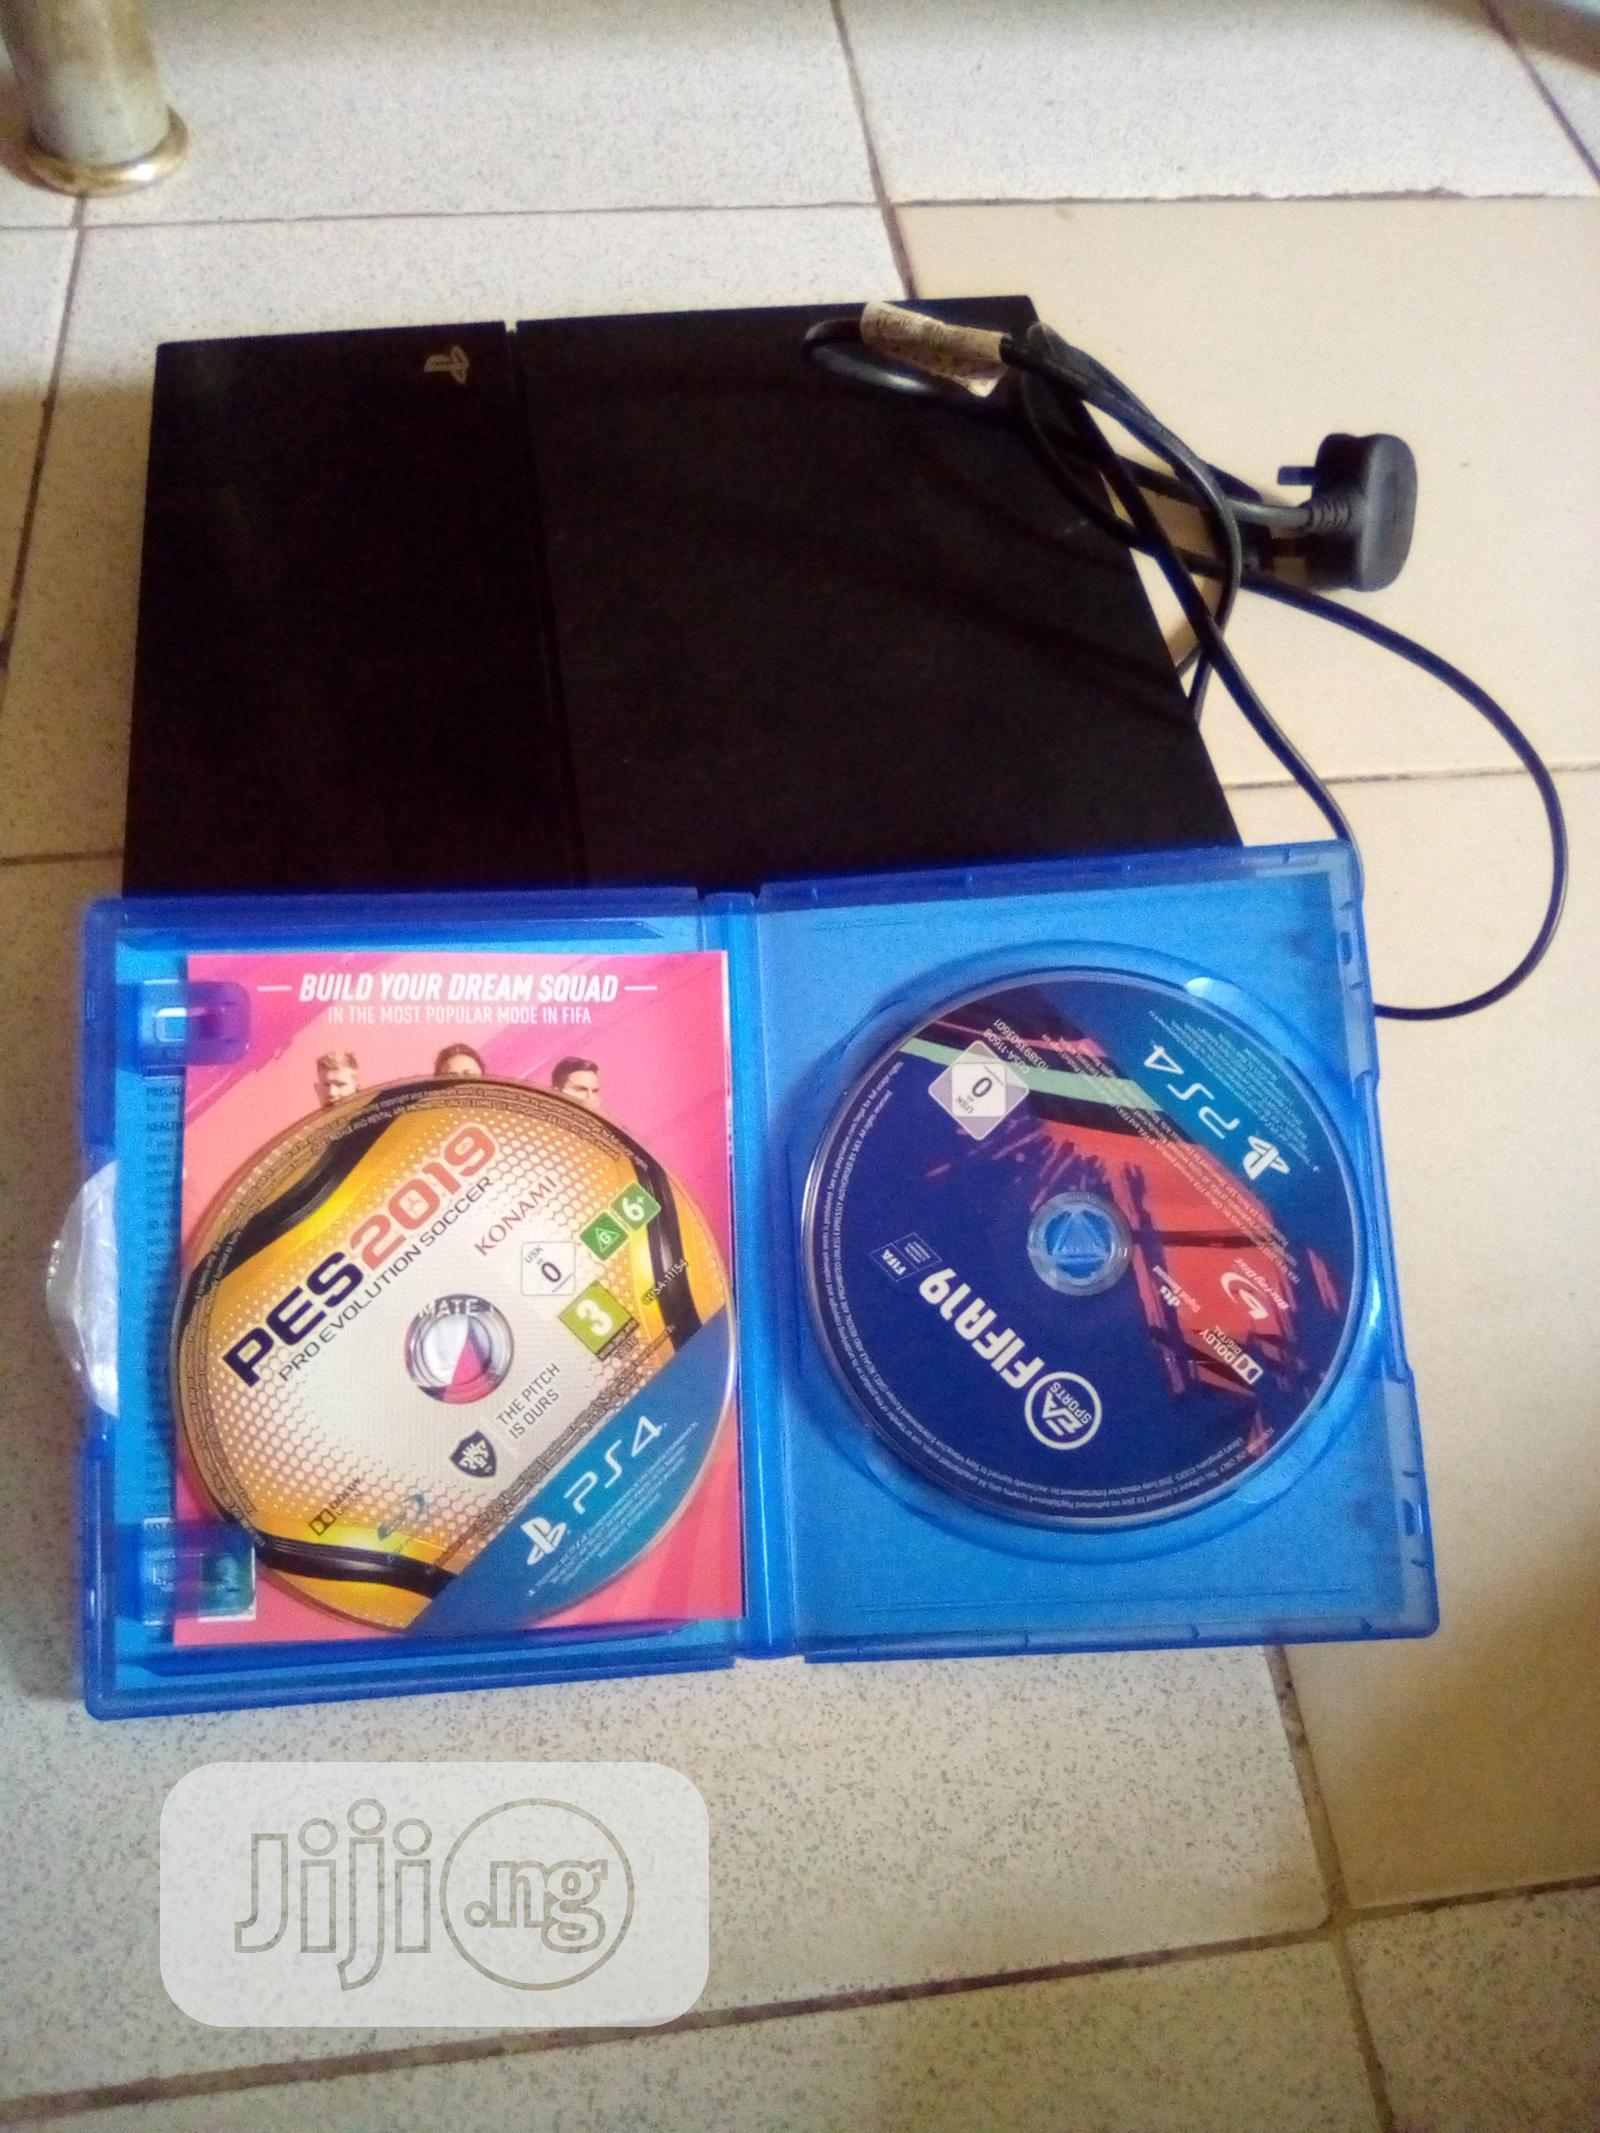 Clean Used PS4 | Video Game Consoles for sale in Ikoyi, Lagos State, Nigeria